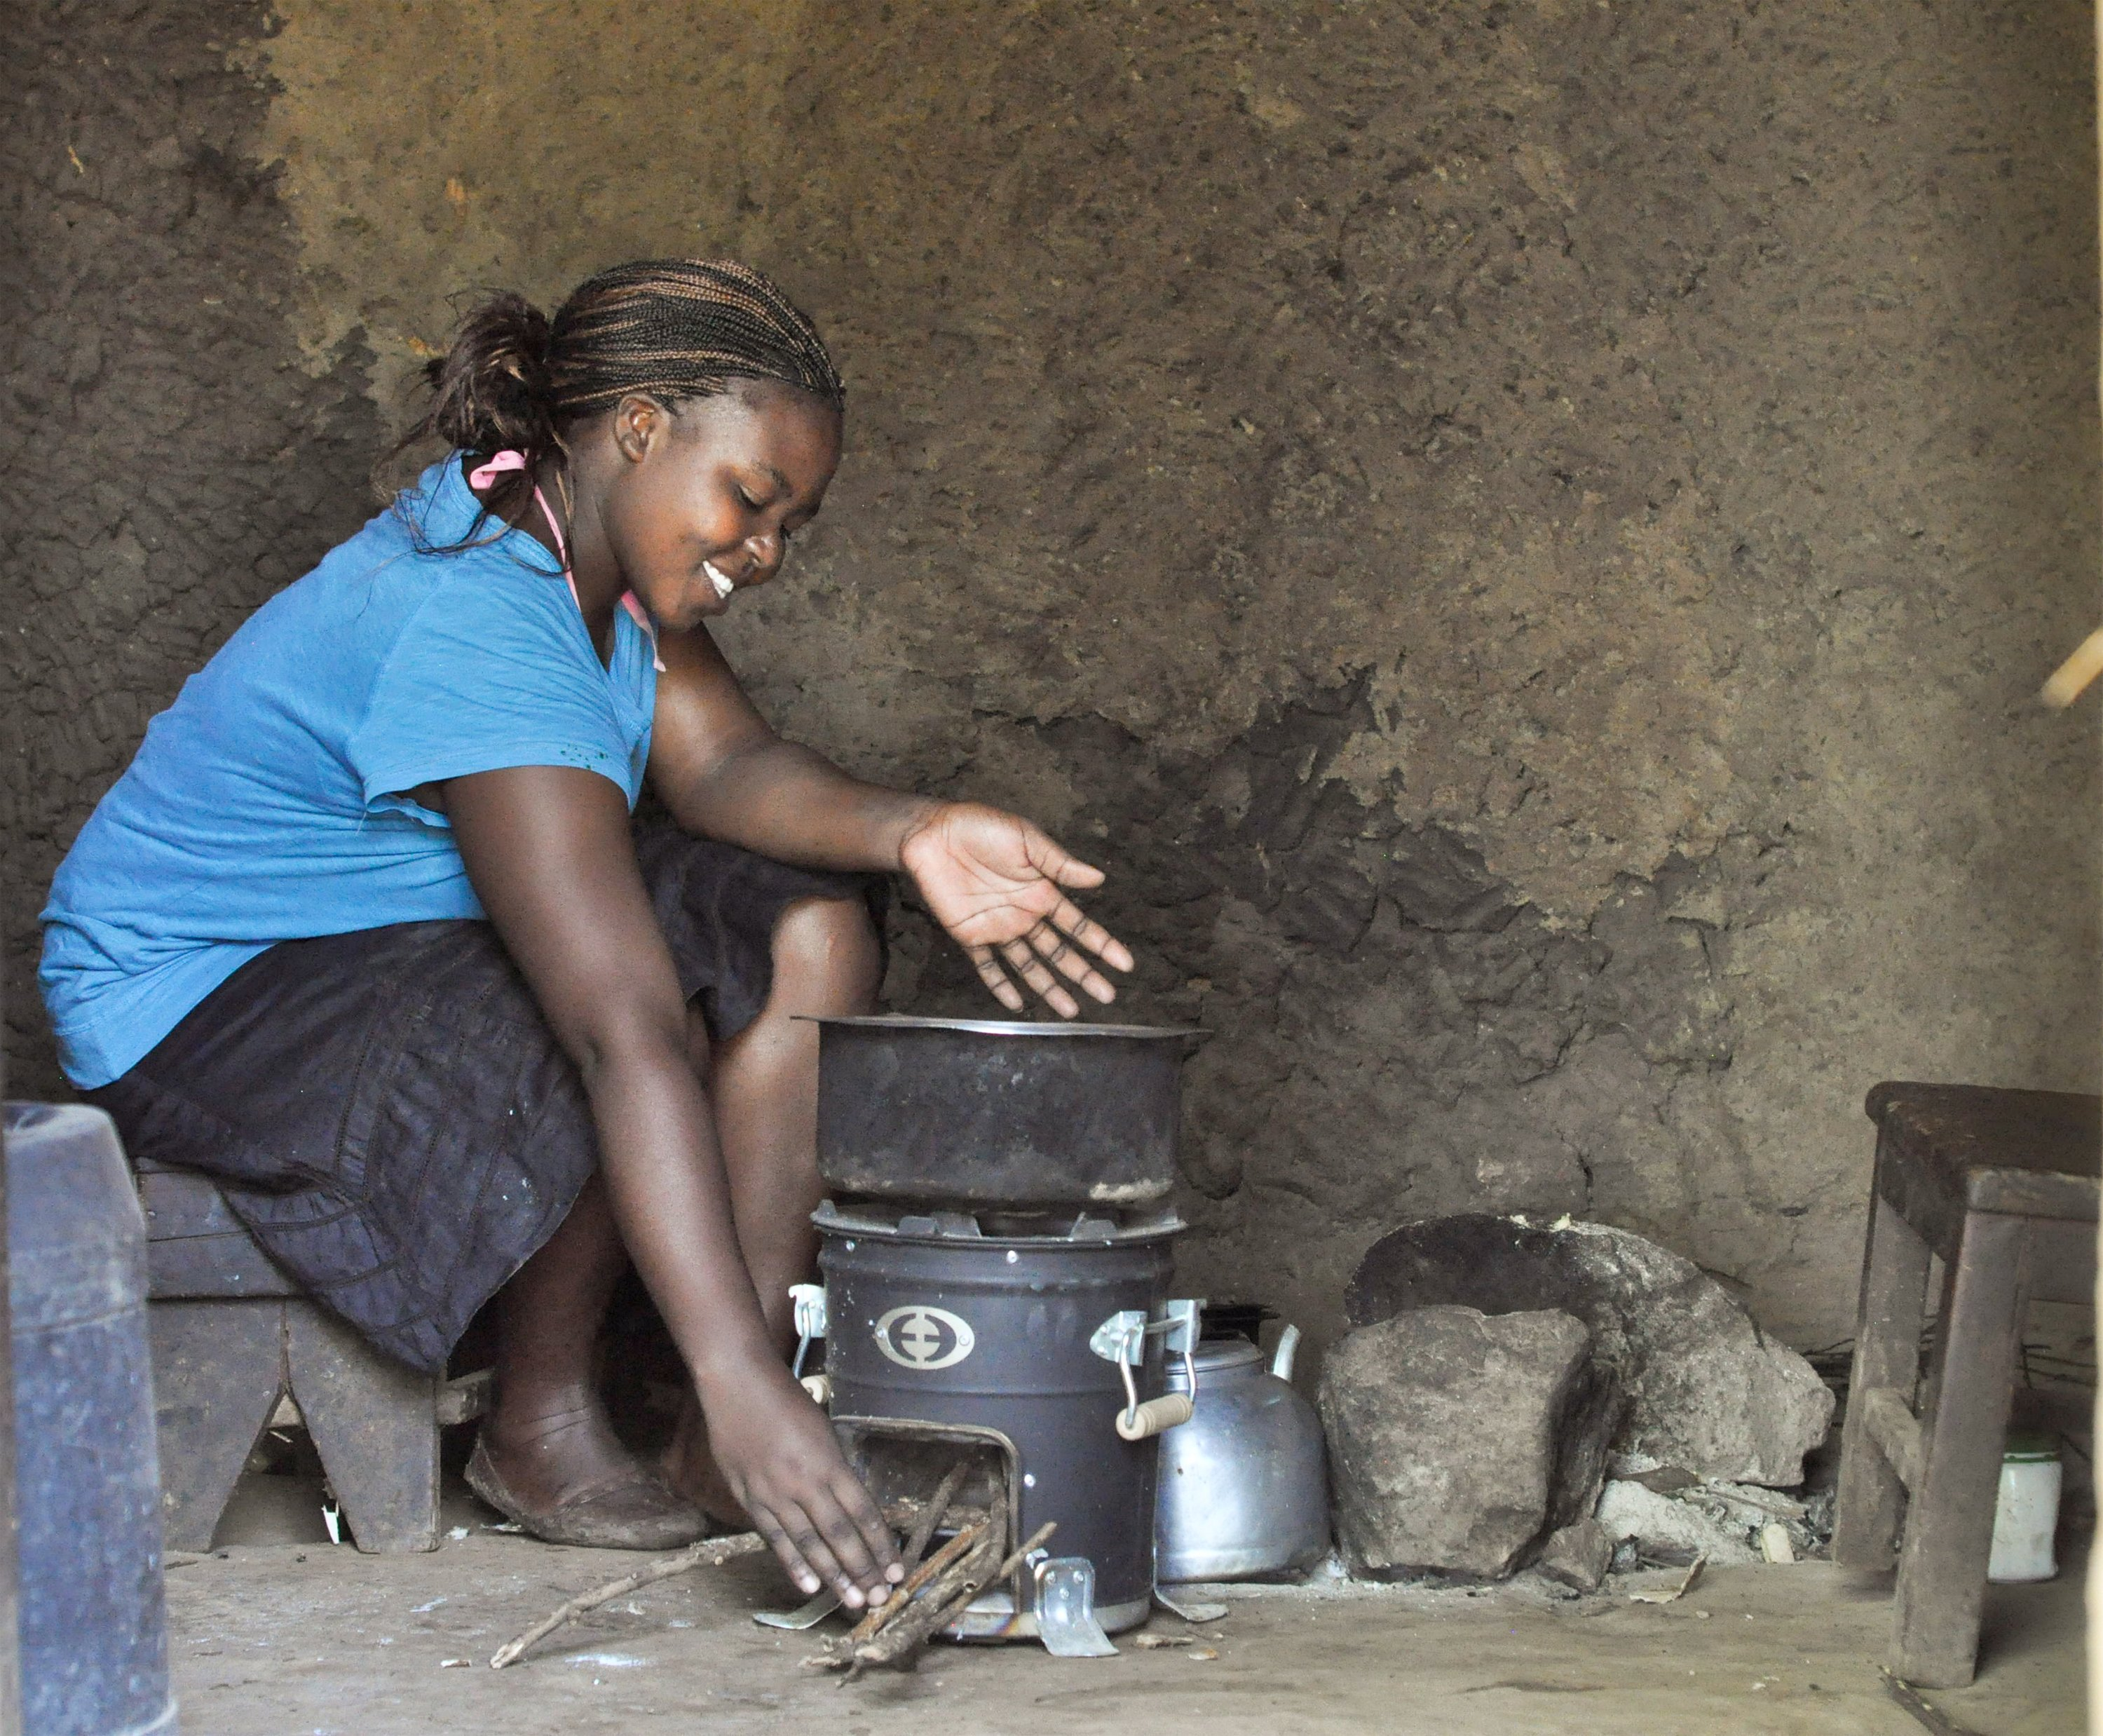 Violet Nalinya prepares food with her cookstove in Kenya